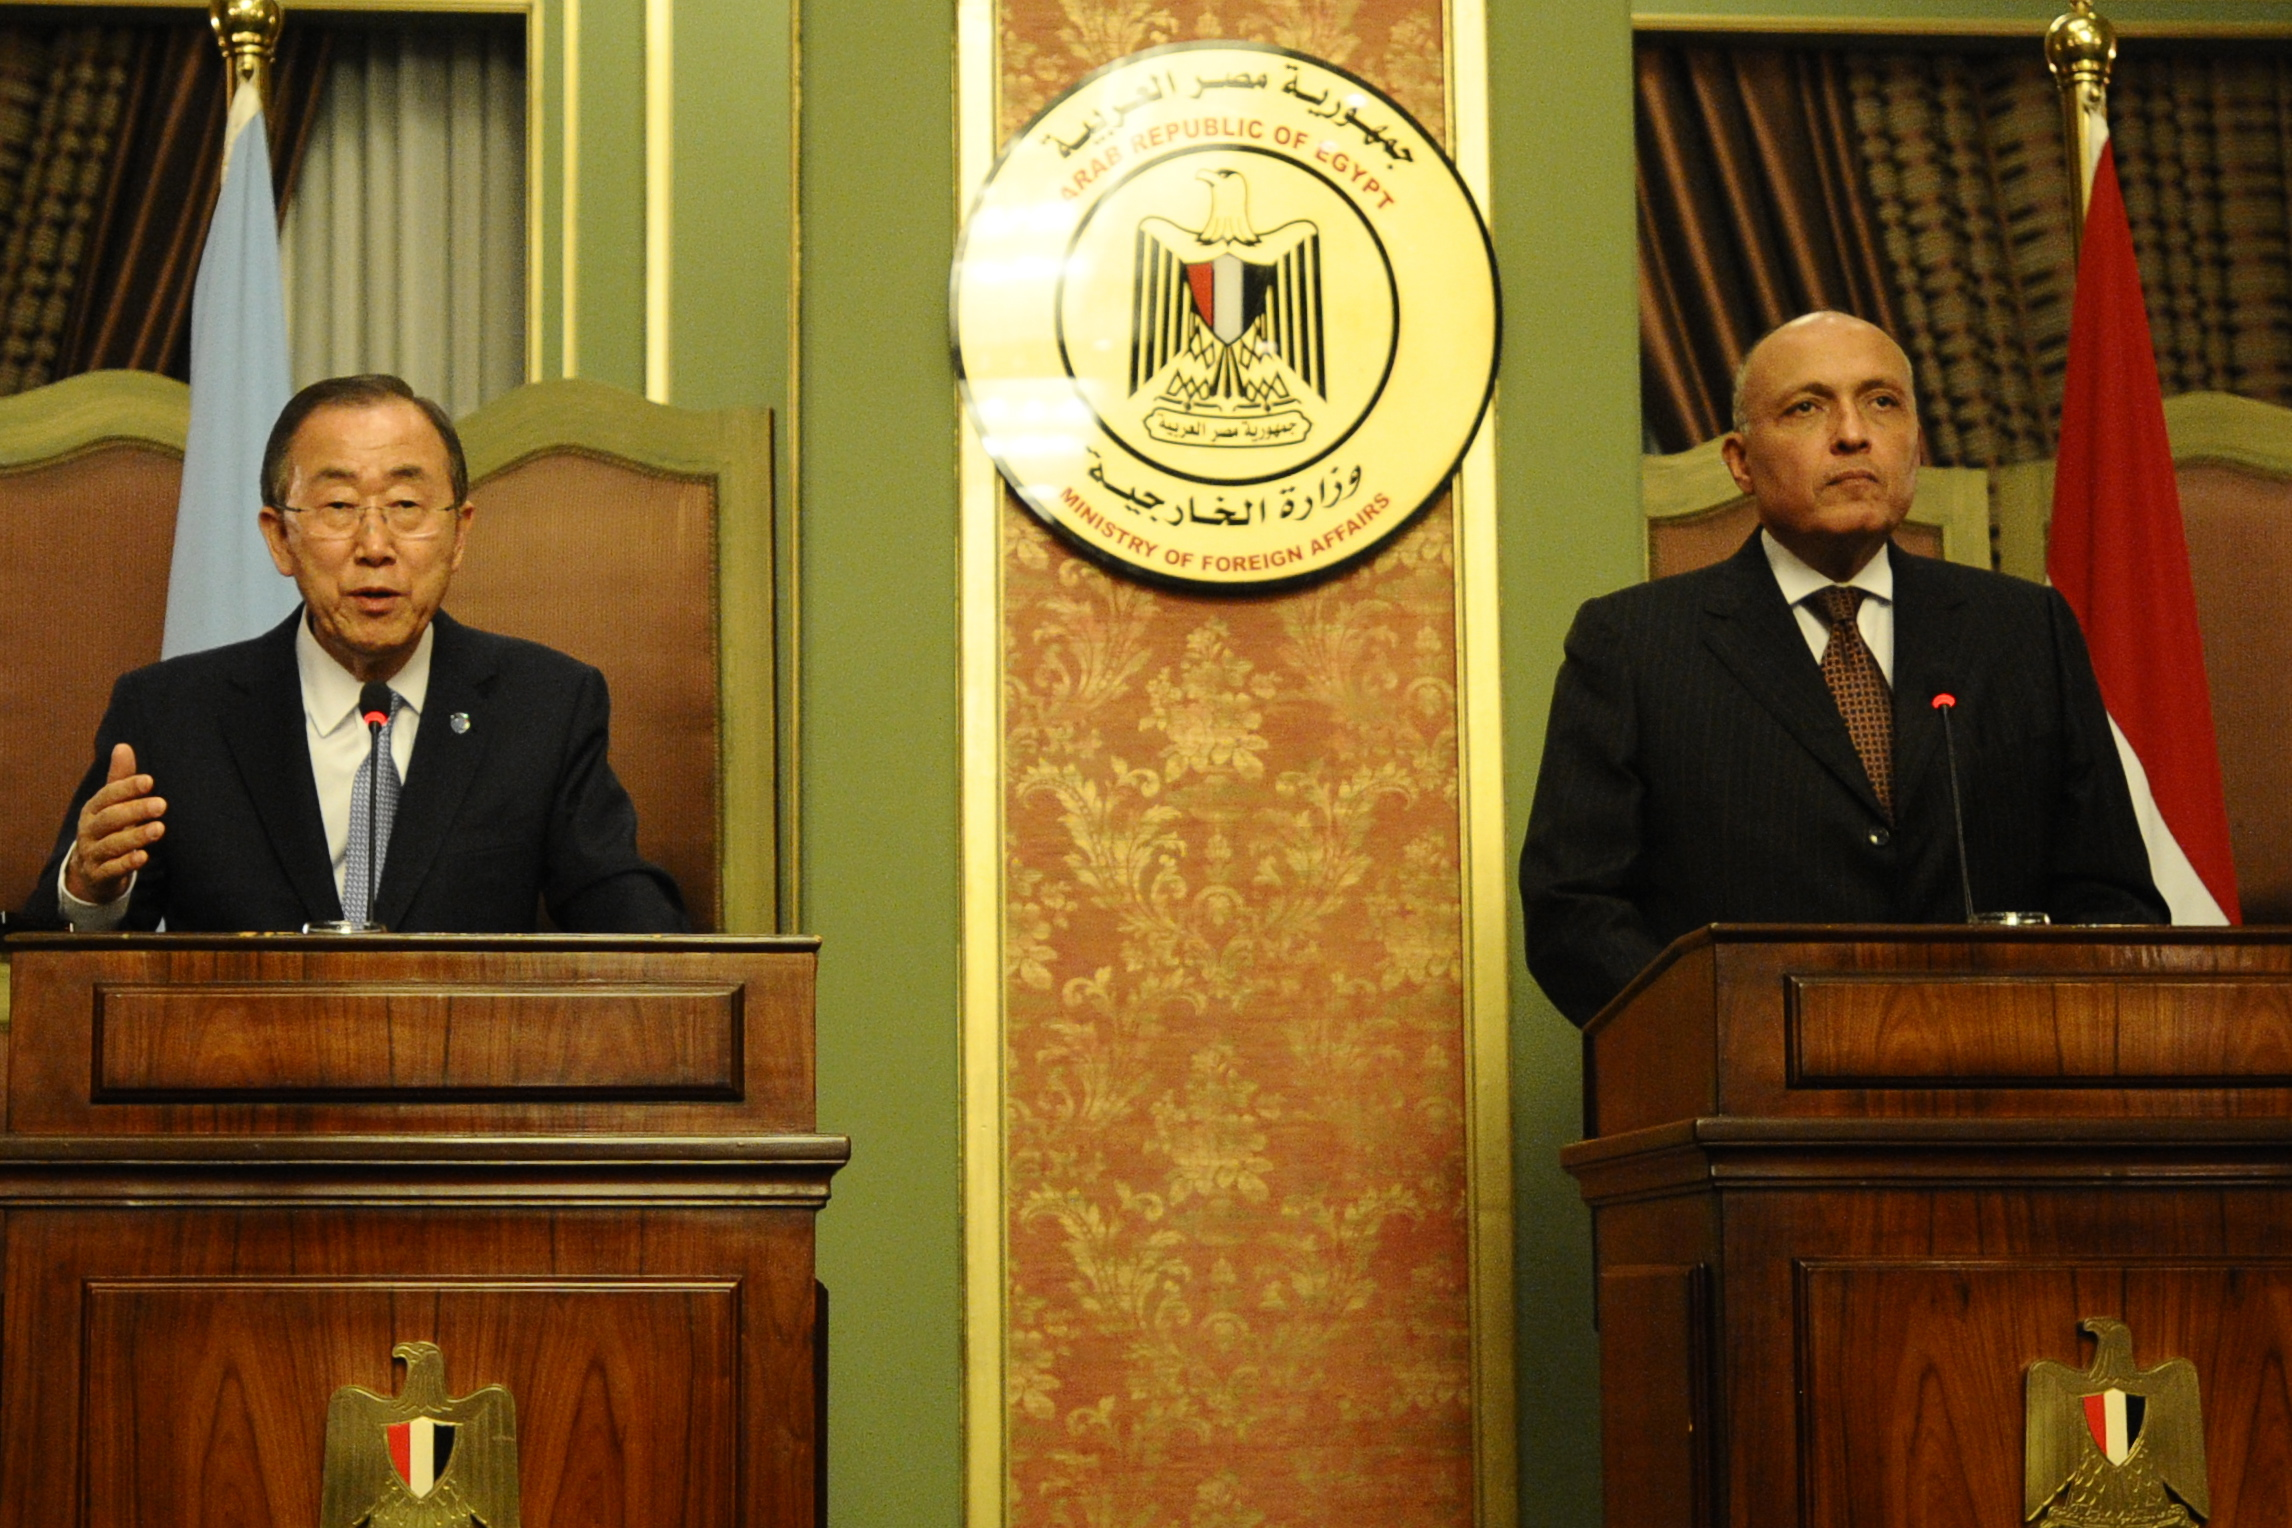 Egyptian Minister of Foreign Affairs Sameh Shoukry held a joint press conference with UN Secretary General Ban Ki Moon in Cairo on Monday. (Photo by Ali Omar)